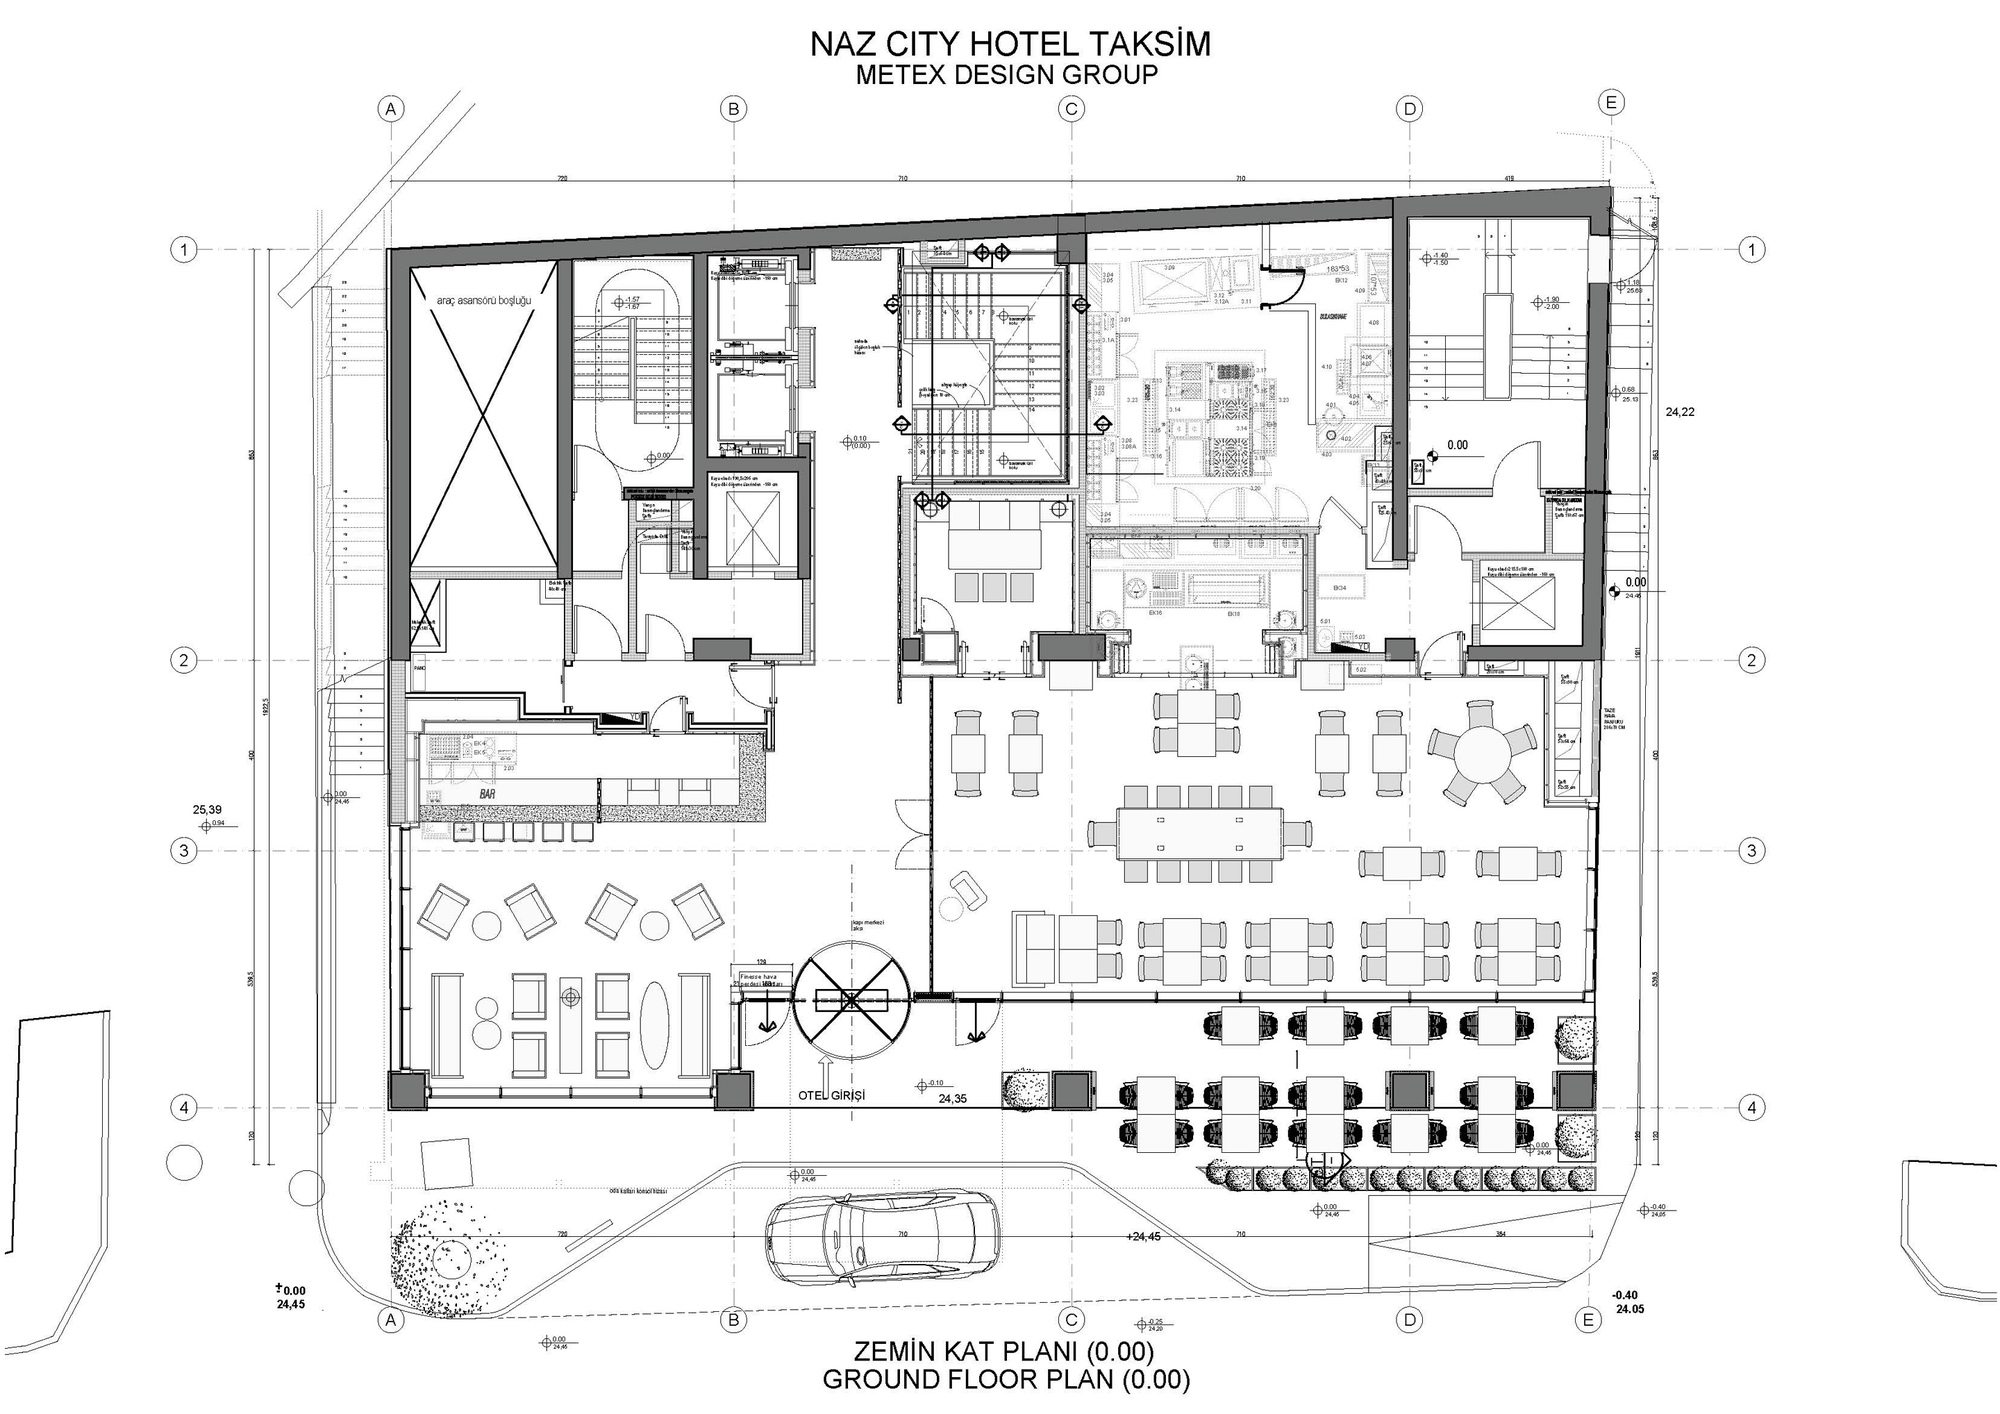 Gallery of naz city hotel taksim metex design group 41 for City hotel design